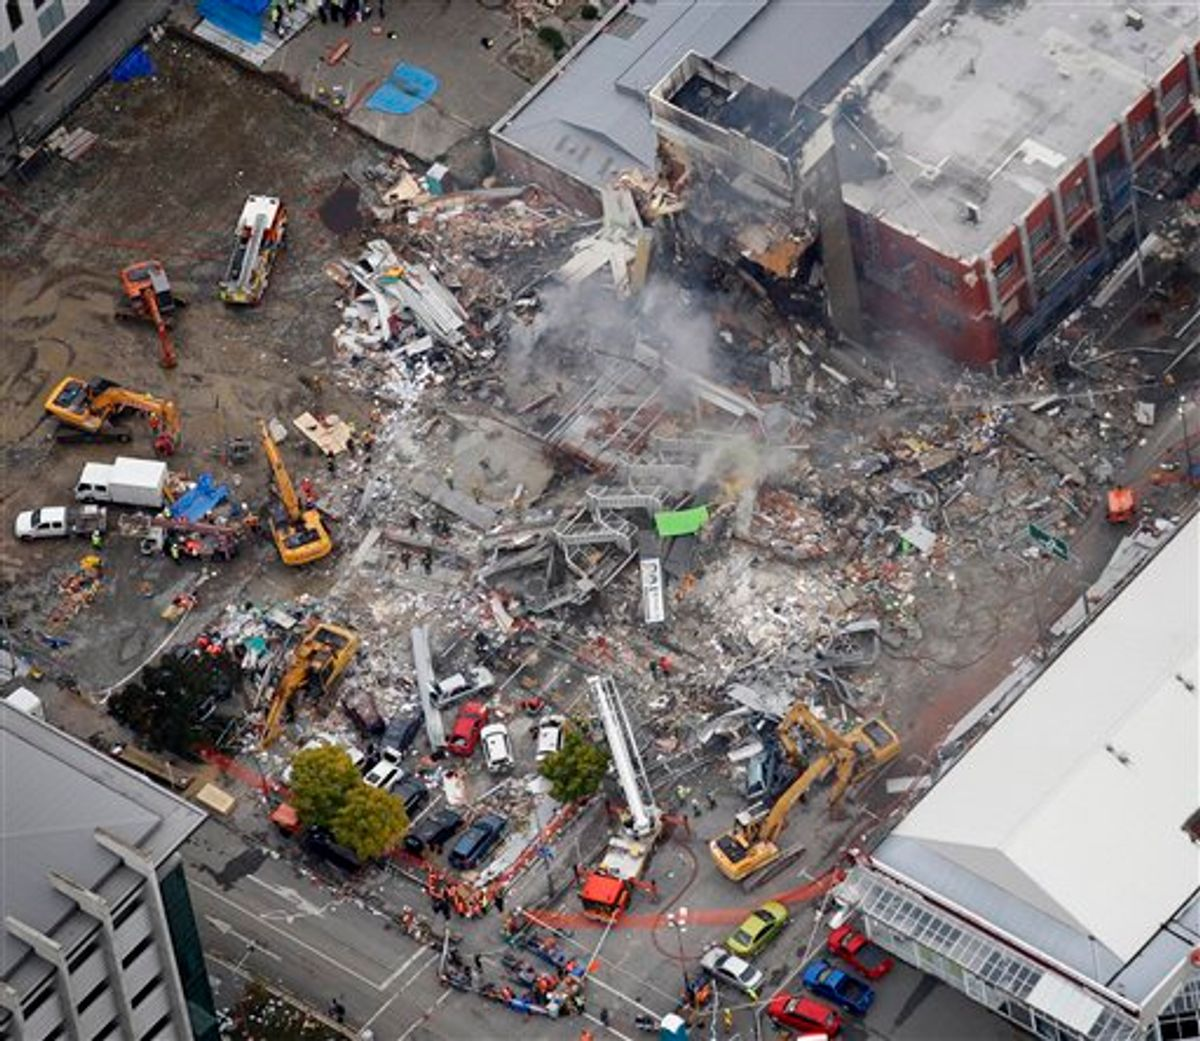 An aerial view of emergency services people working at the ruined CTV building in central in Christchurch, New Zealand, Wednesday, Feb. 23, 2011. Search teams used their bare hands, dogs, heavy cranes and earth movers Wednesday to pull survivors from the rubble of Tuesday's powerful earthquake. (AP Photo/Sarah Ivey) AUSTRALIA OUT, NEW ZEALAND OUT  (AP)